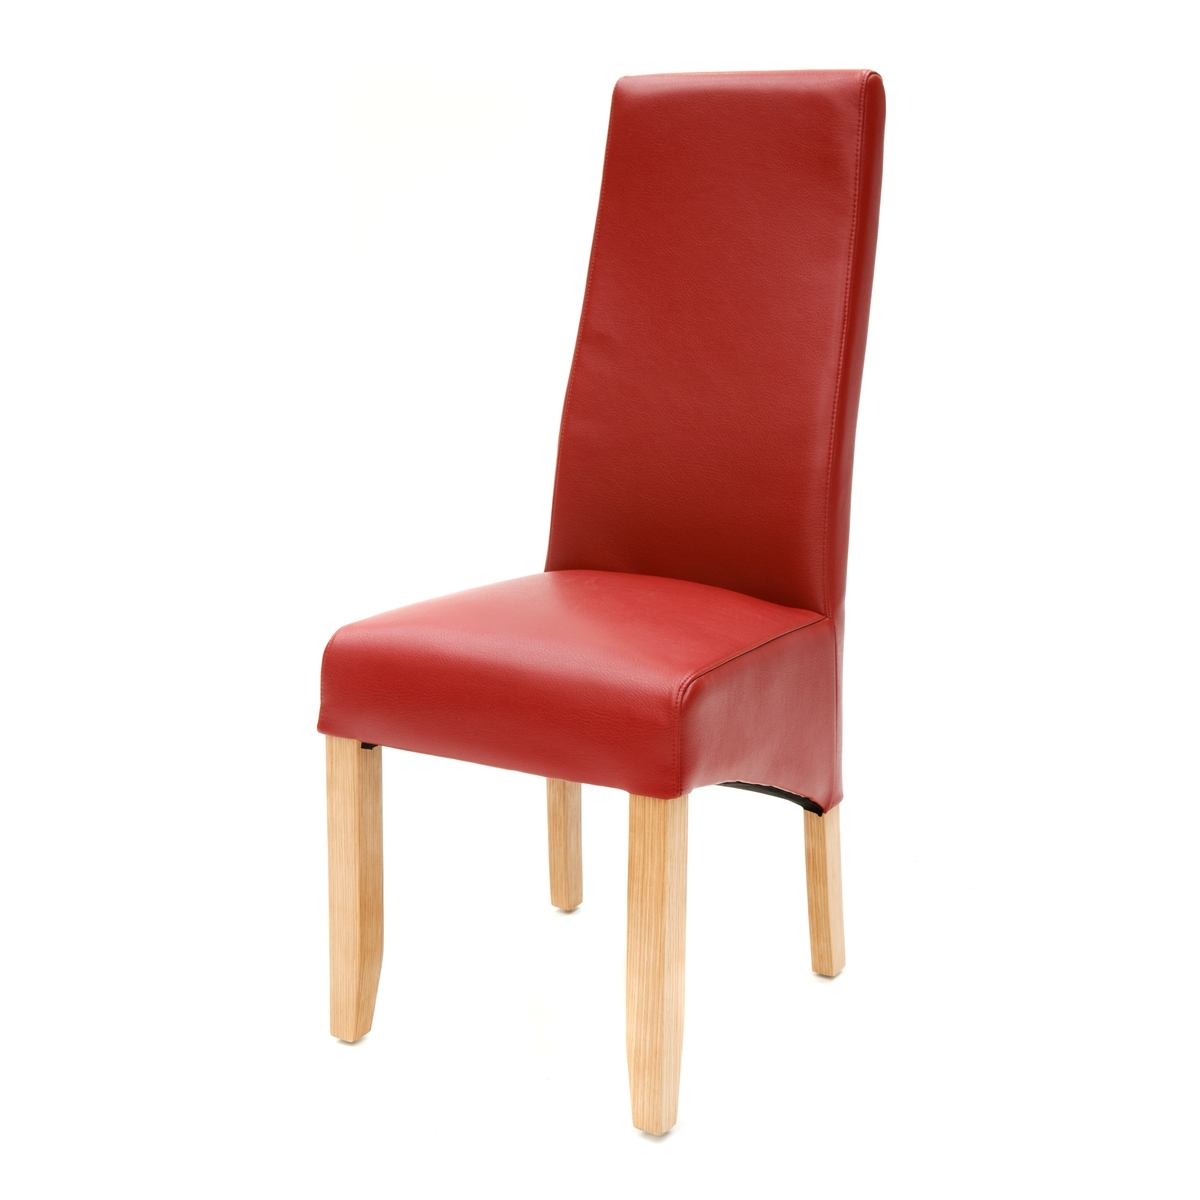 Wavey Dining Chair – Scs Endurance Mirage Red – Willis & Gambier Outlet With Regard To Most Popular Scs Dining Tables (View 10 of 25)